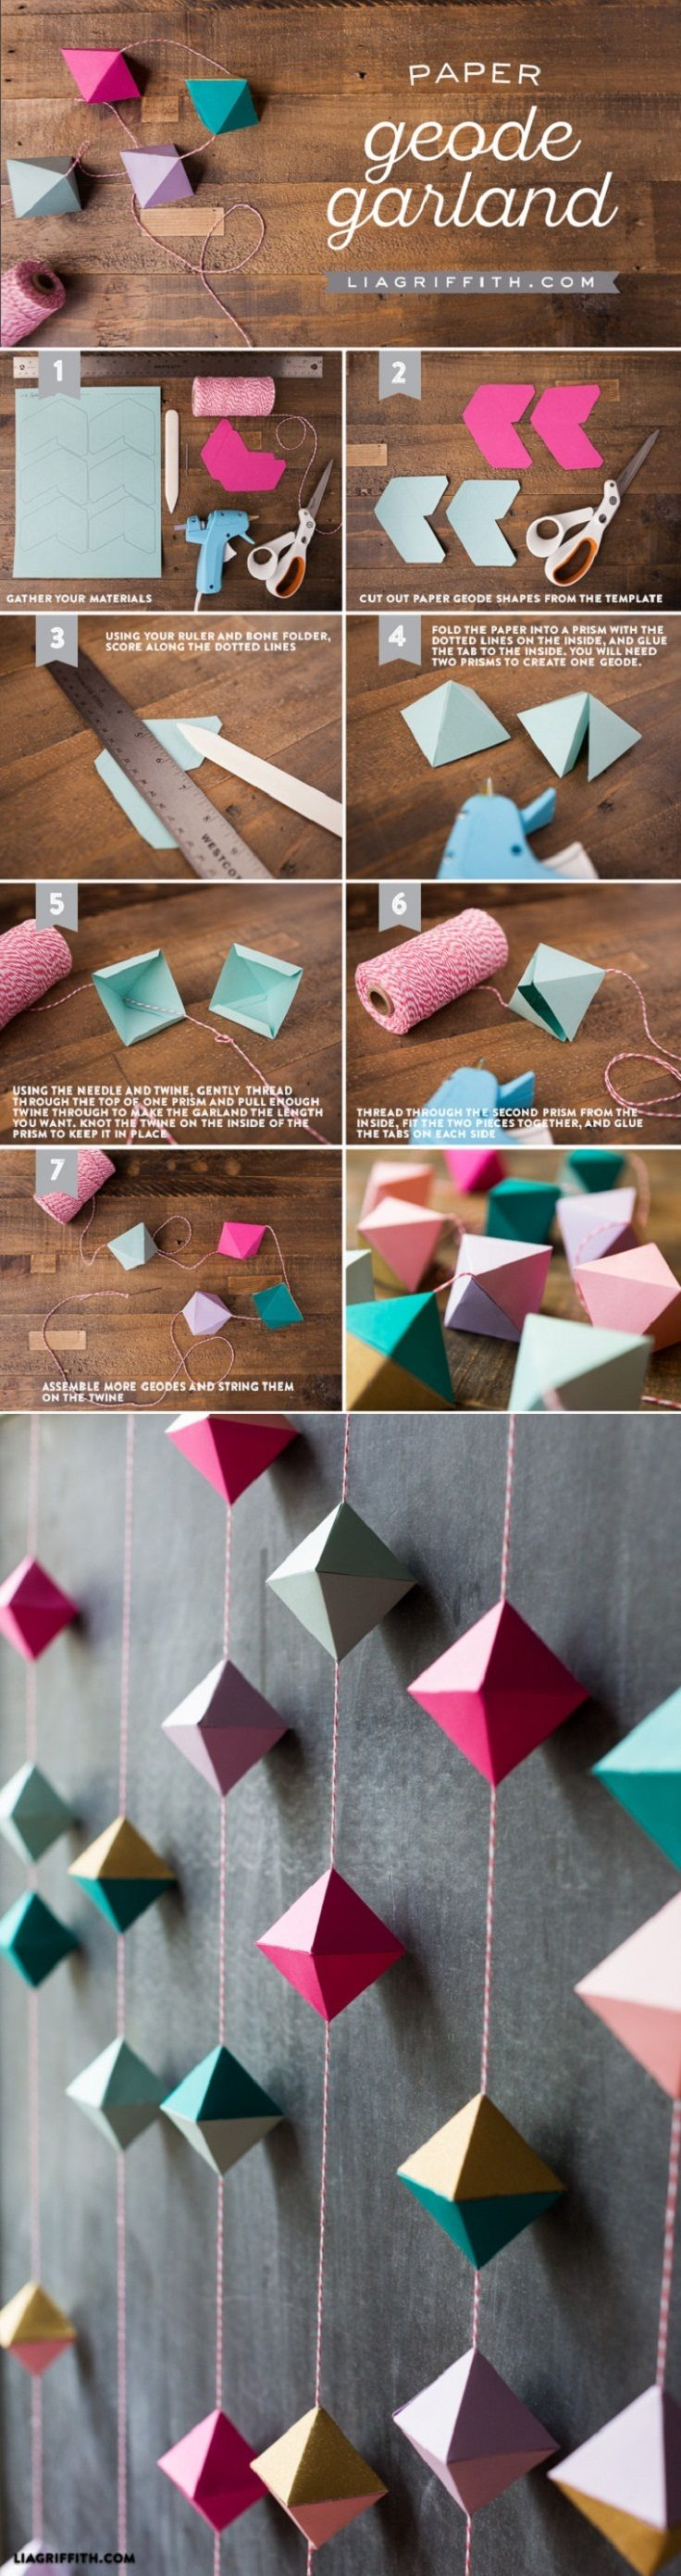 Diy Paper Geode Garland What's an article about paper